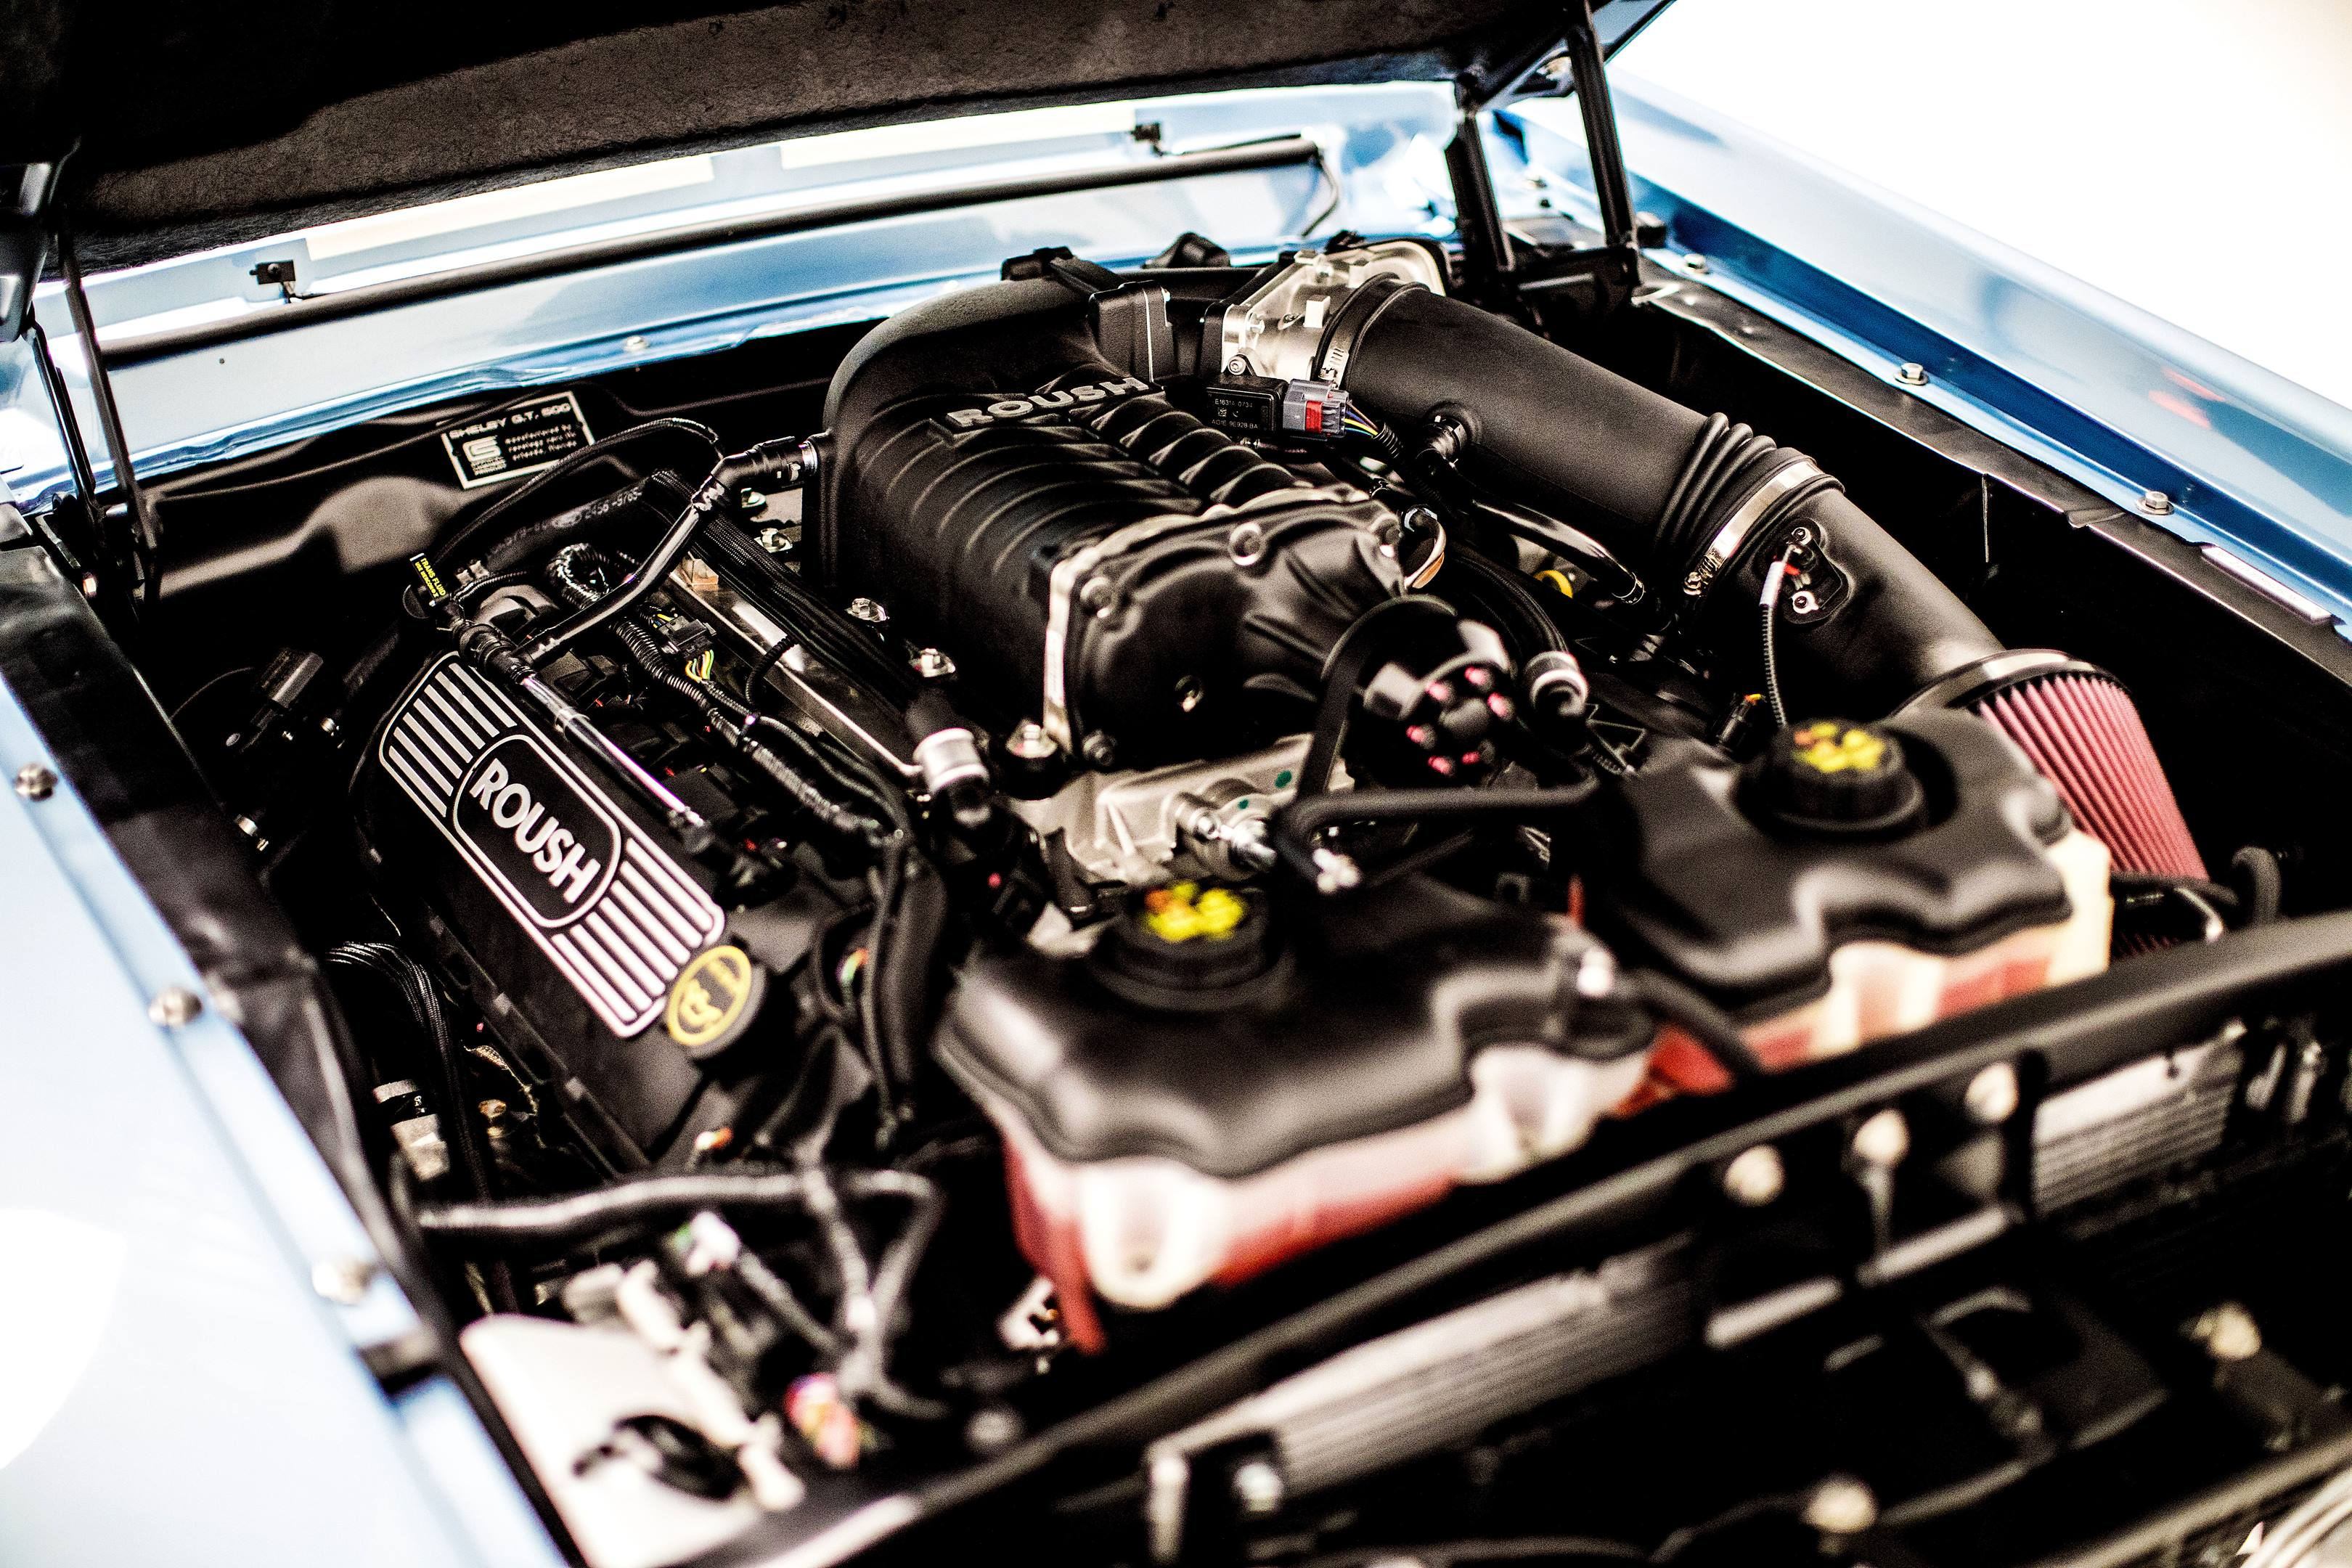 Revology Shelby GT350 engine